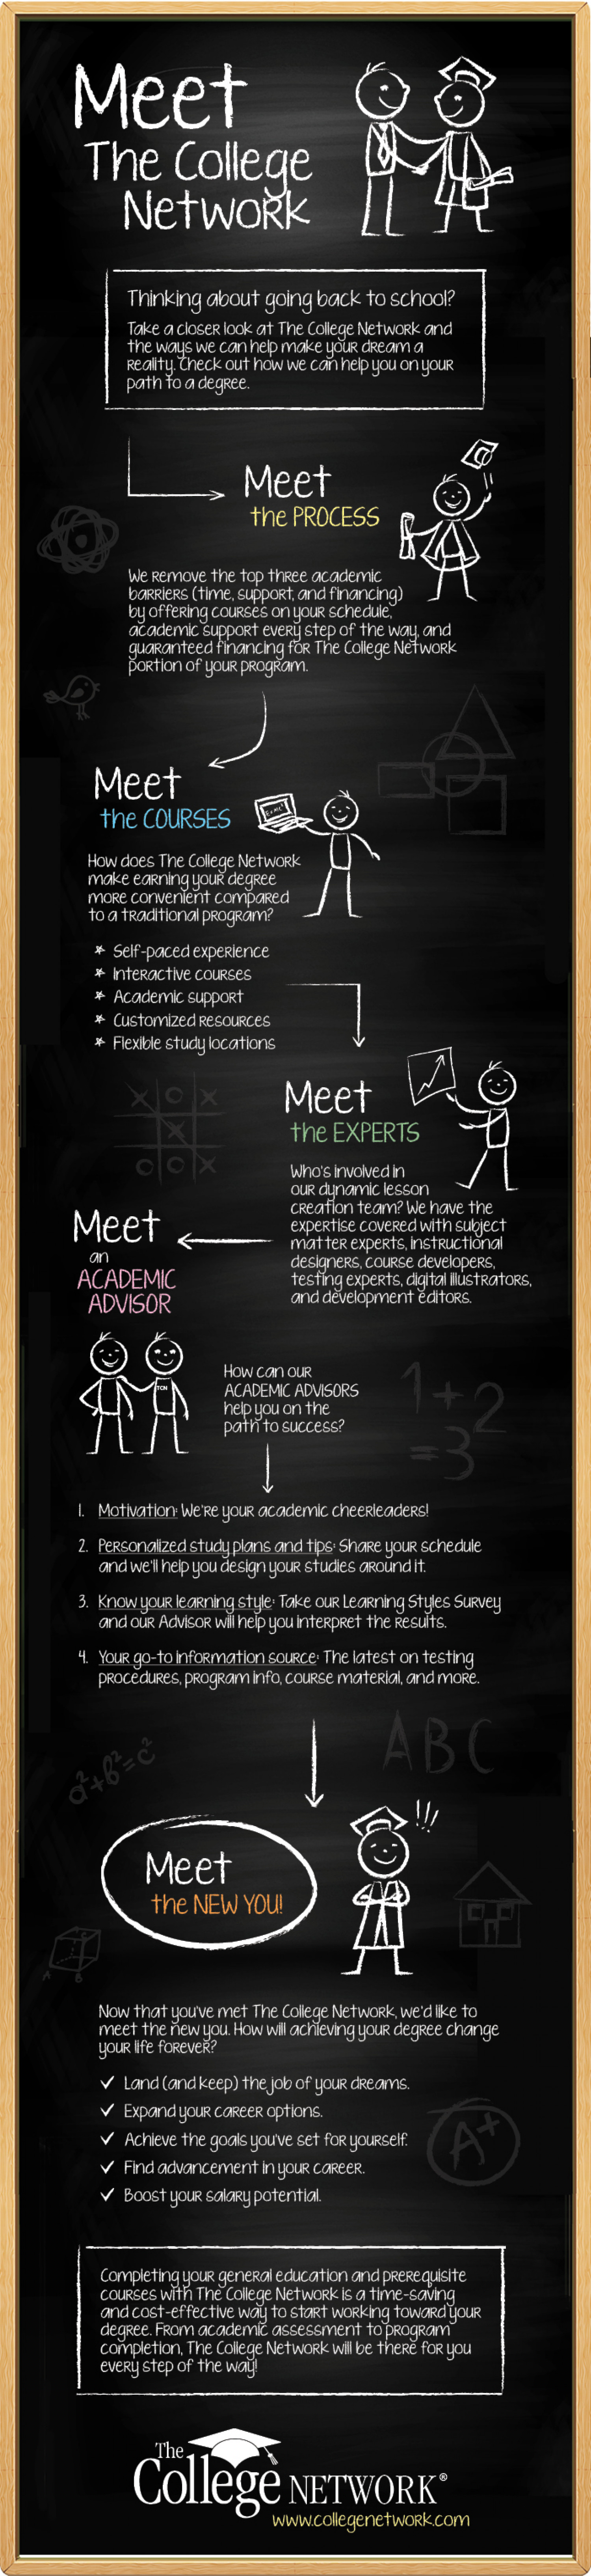 Meet The College Network  Infographic